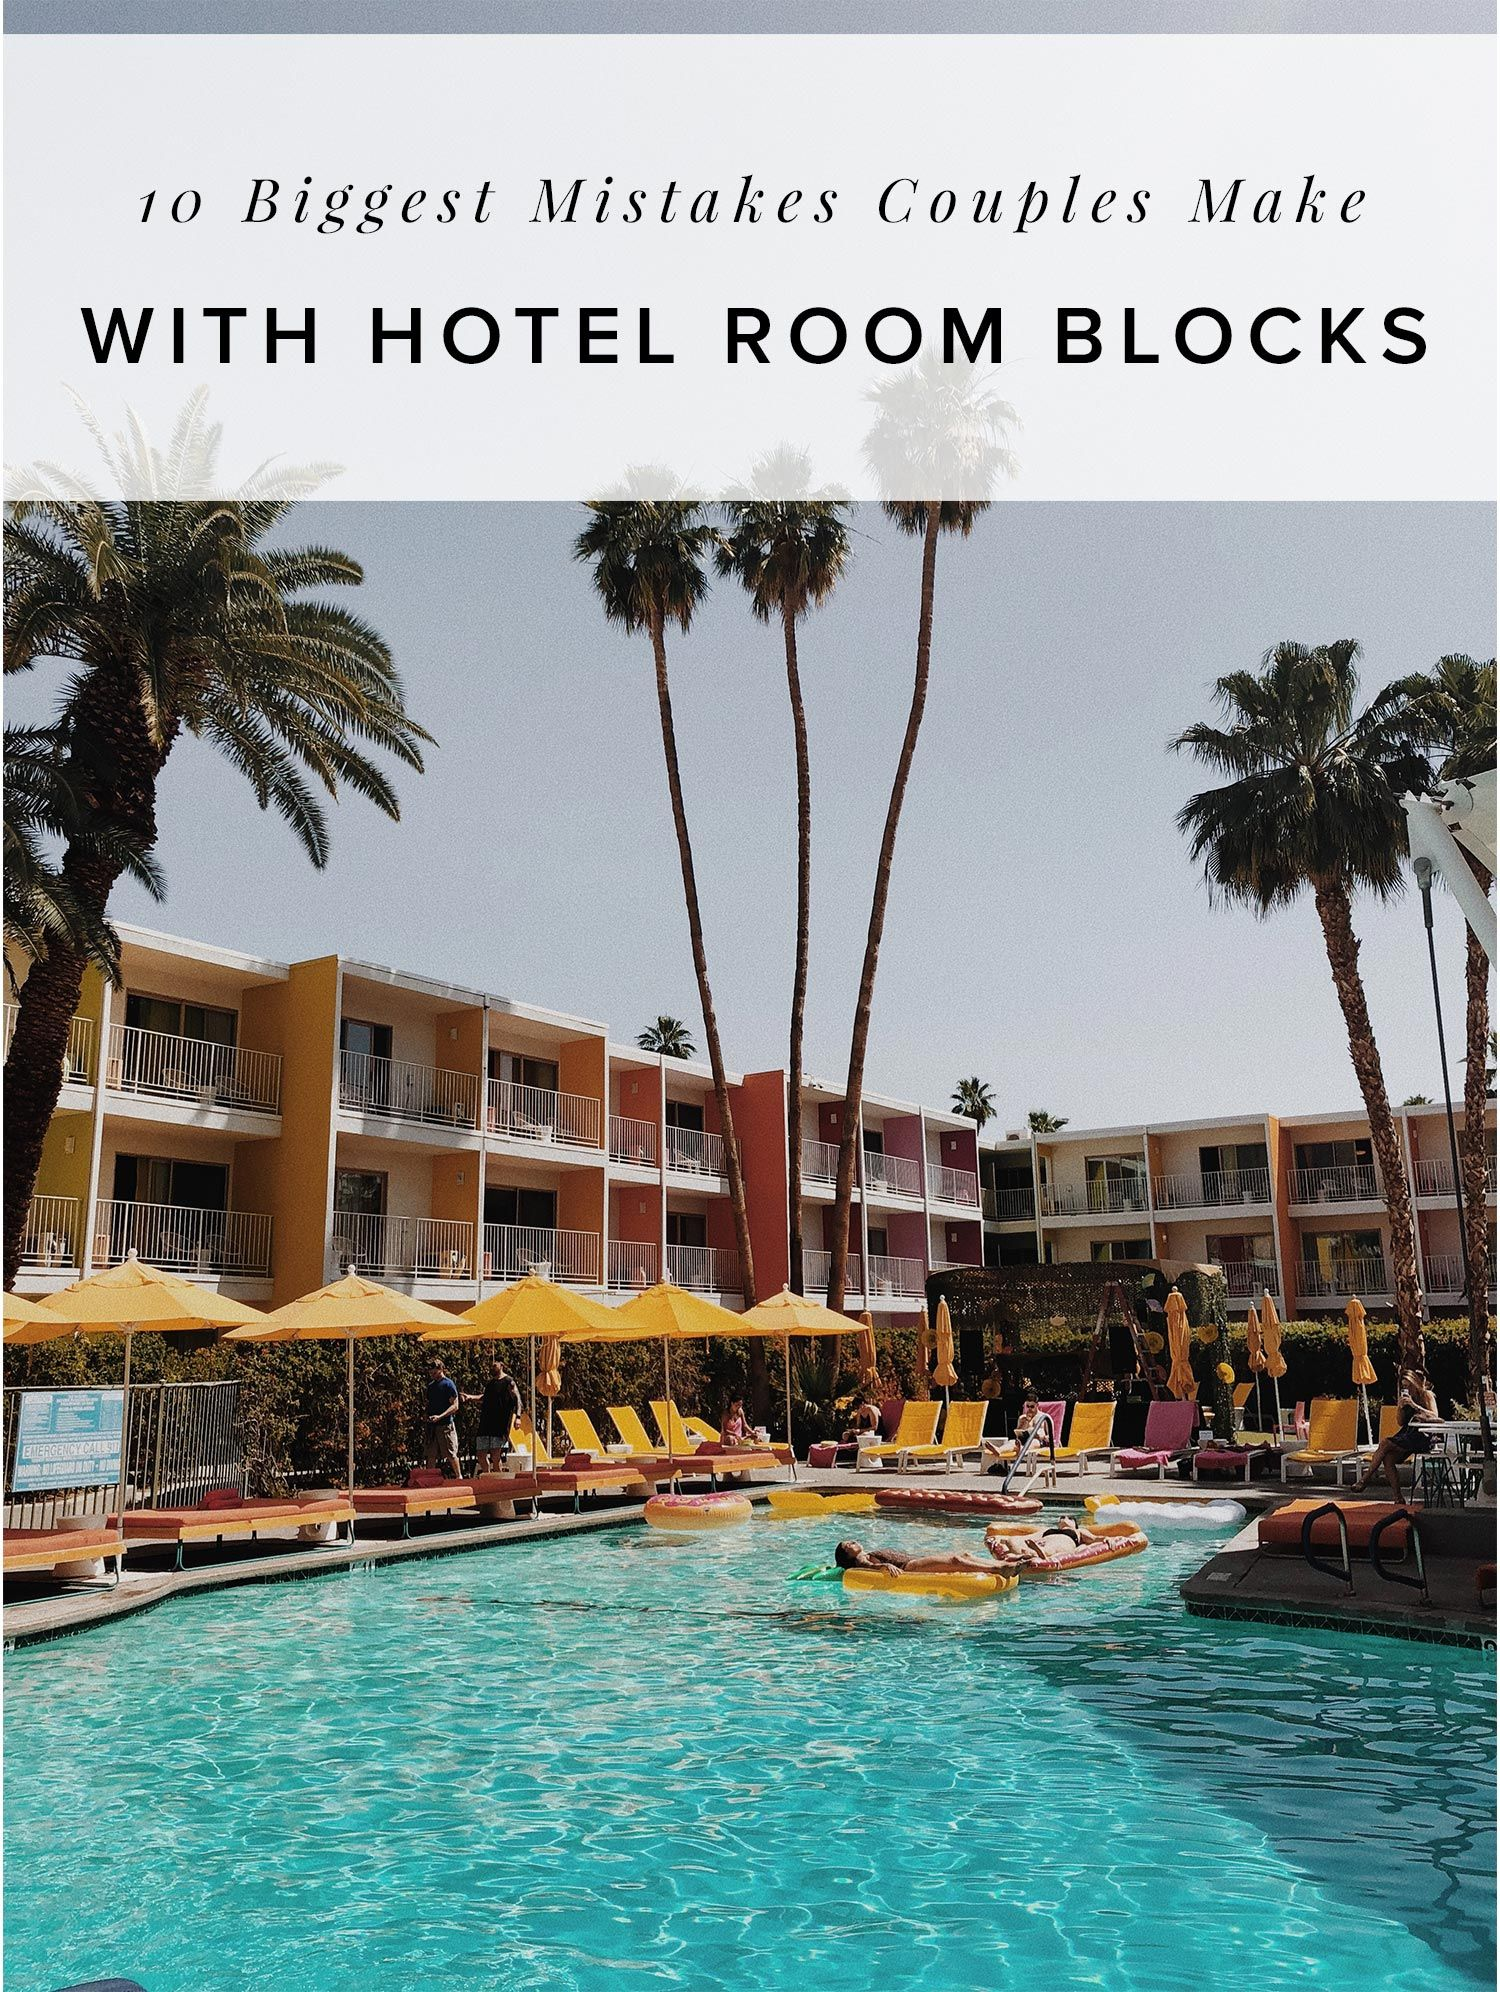 10 Biggest Mistakes Couples Make with Hotel Room Blocks and